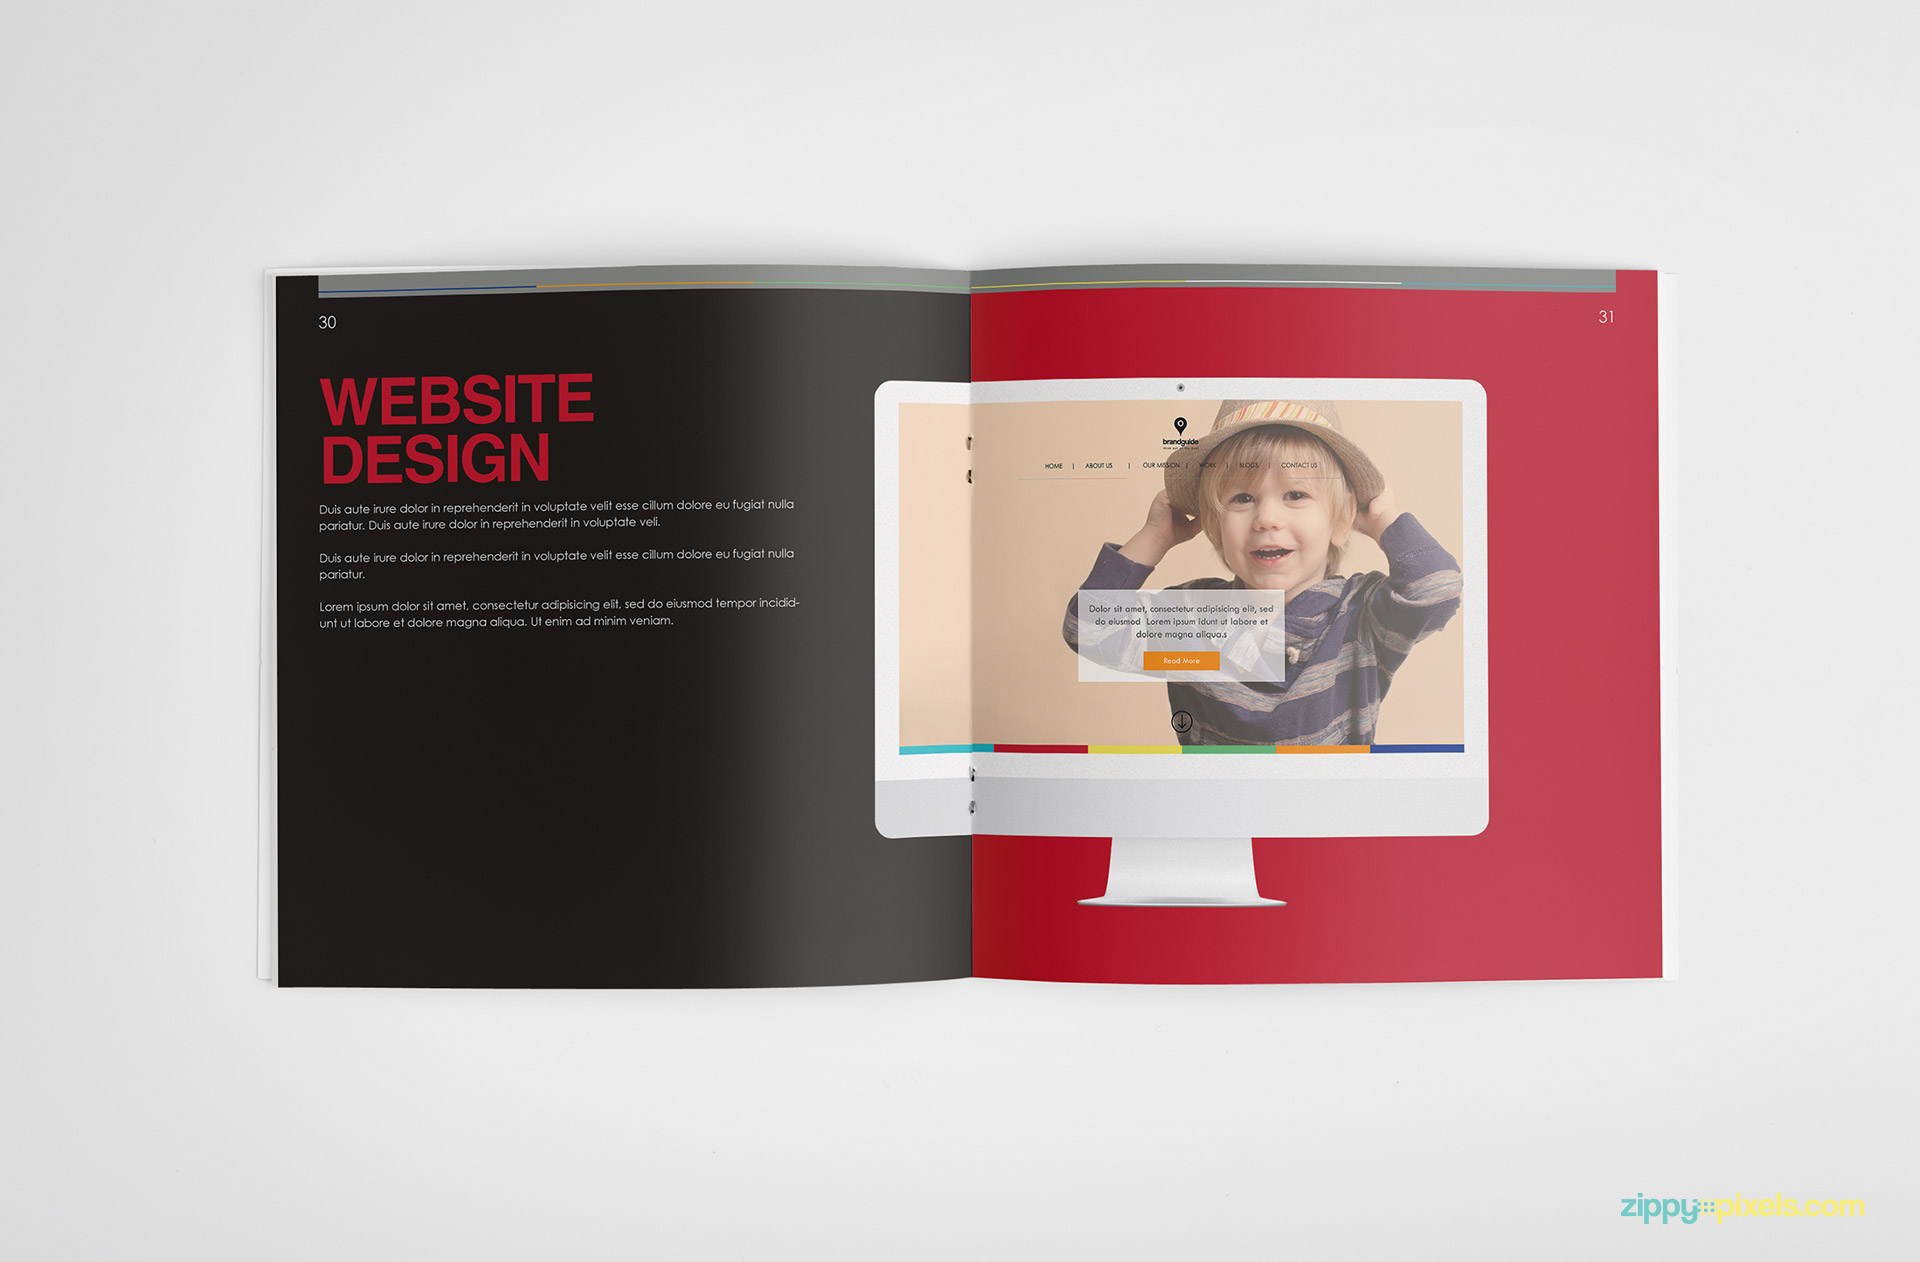 19-brand-book-12-website-design